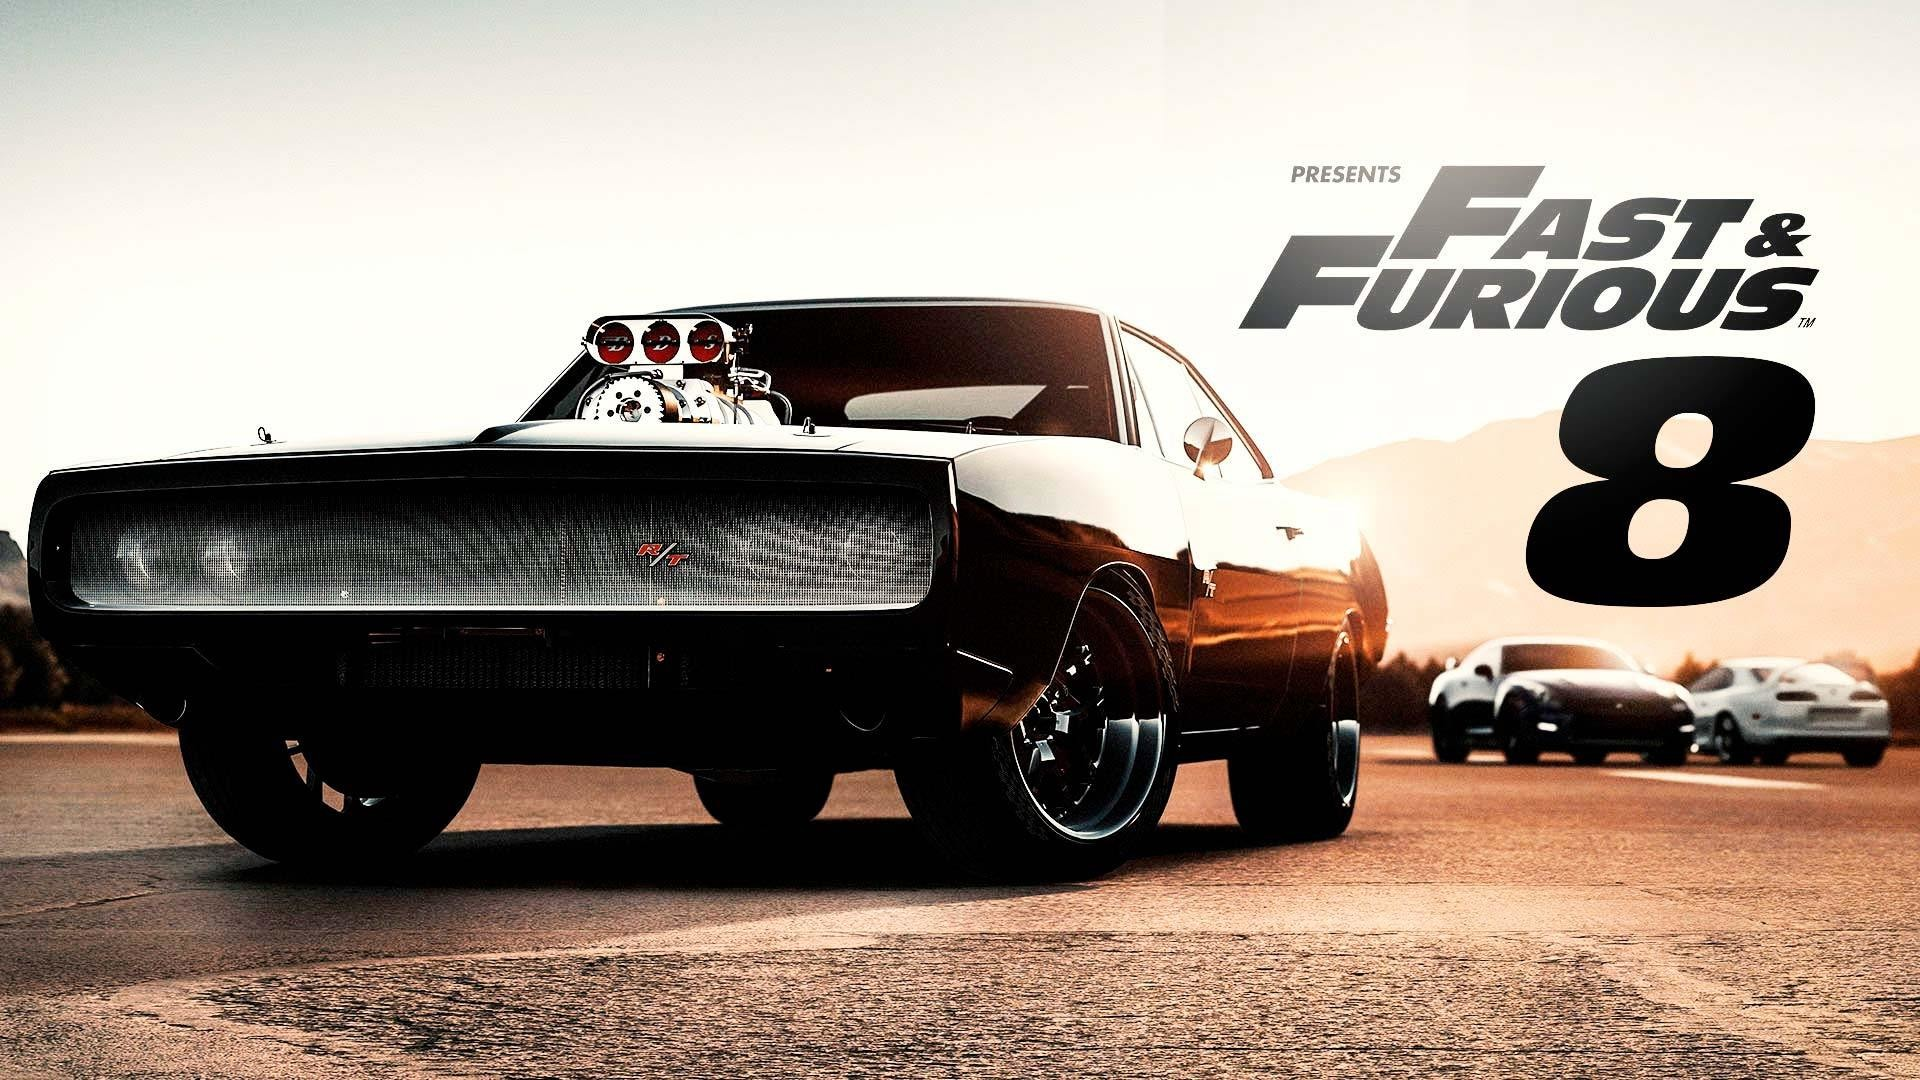 1920x1080 Fast Furious HD Wallpapers Backgrounds Wallpaper